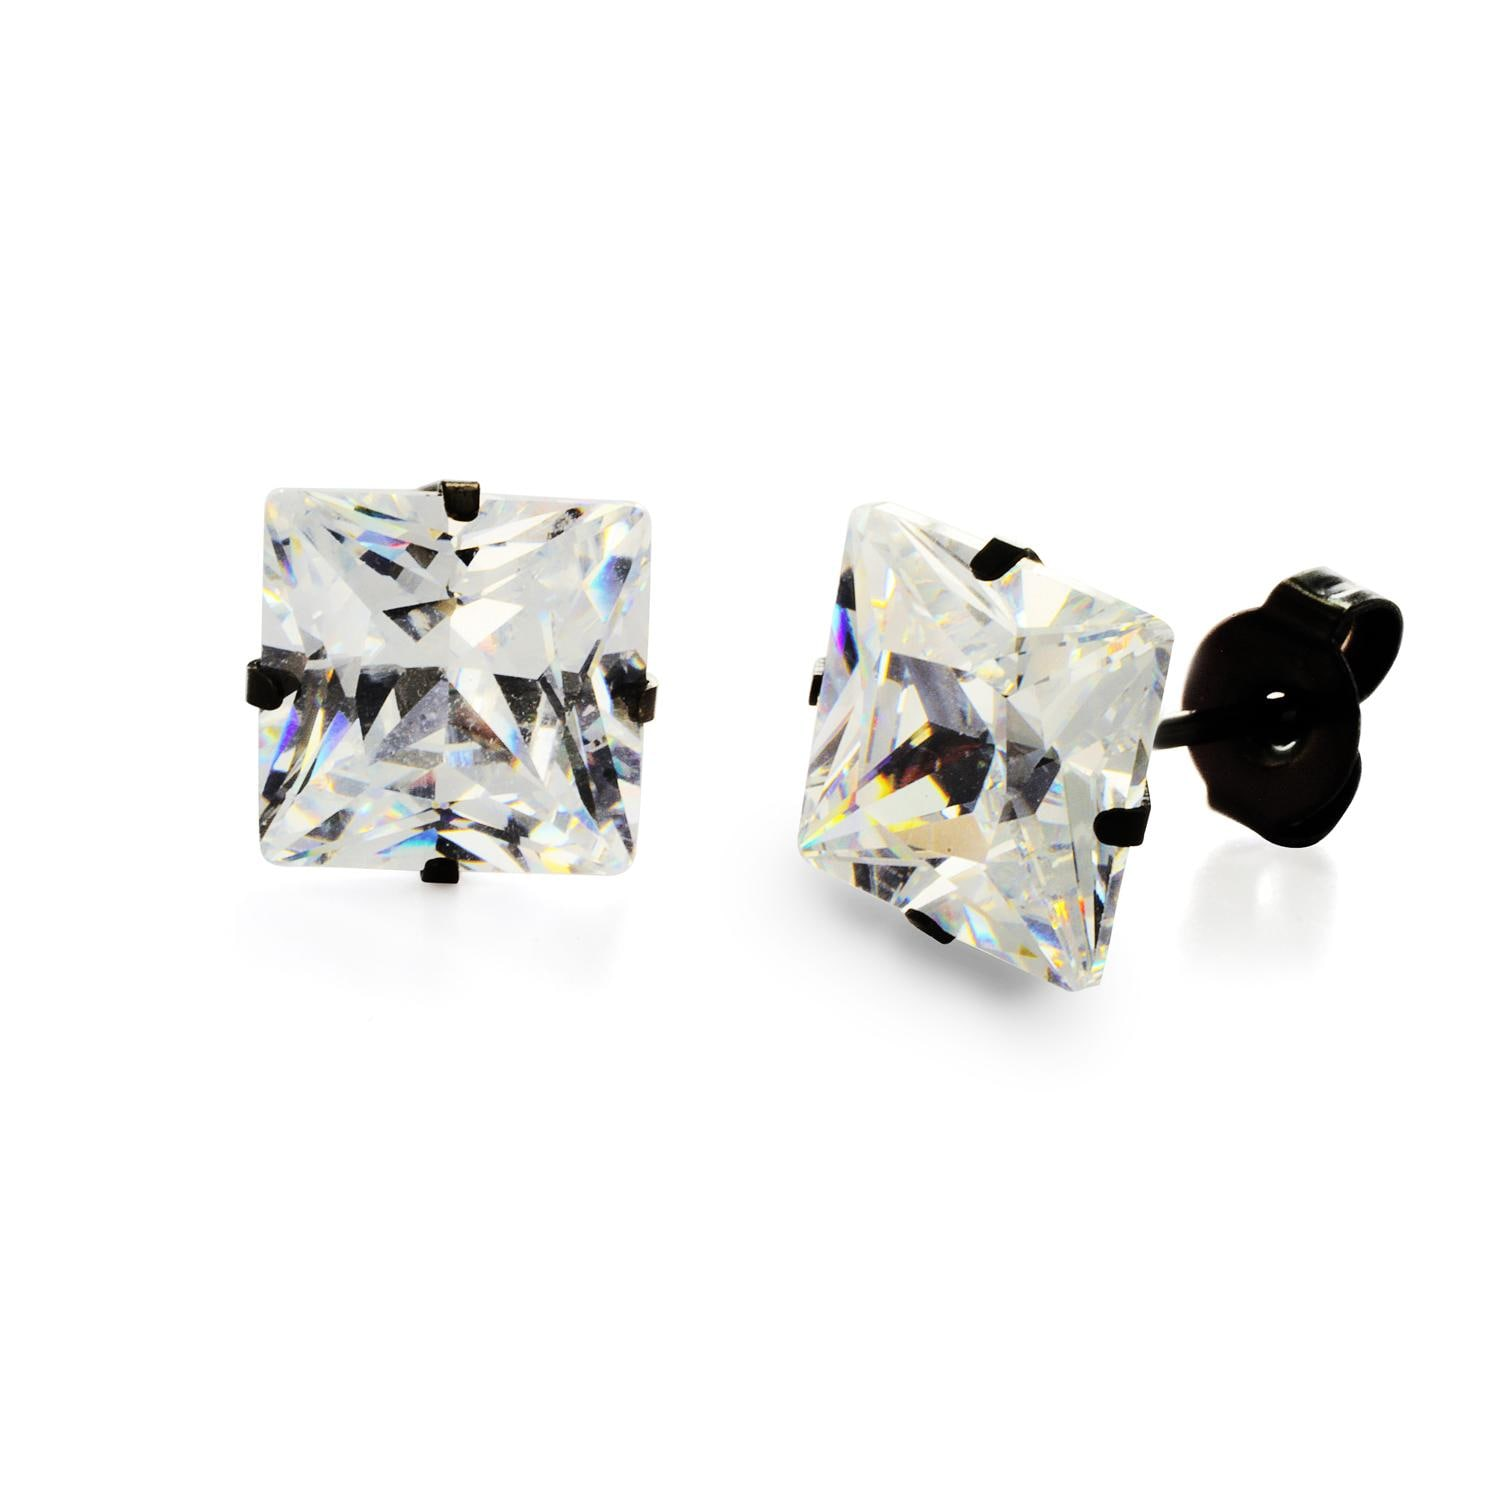 Black Plated Stainless Steel Stud Earrings with Princess Cut Clear CZ - 9 mm